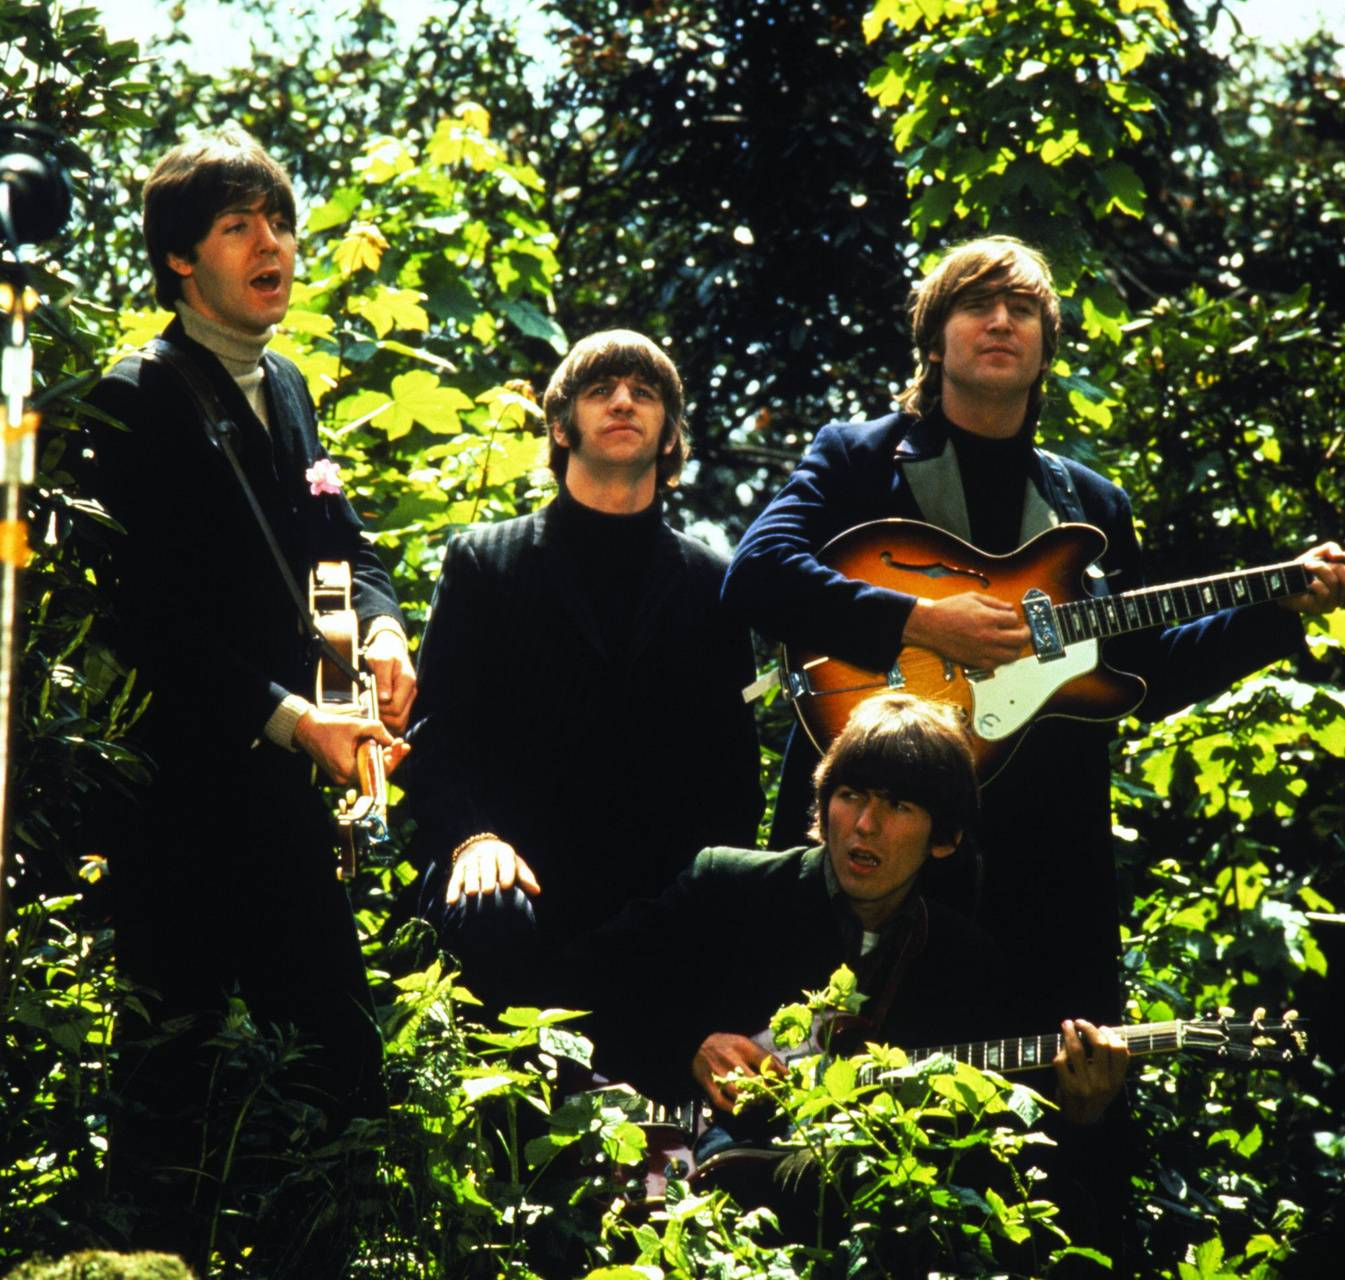 Beatles forest